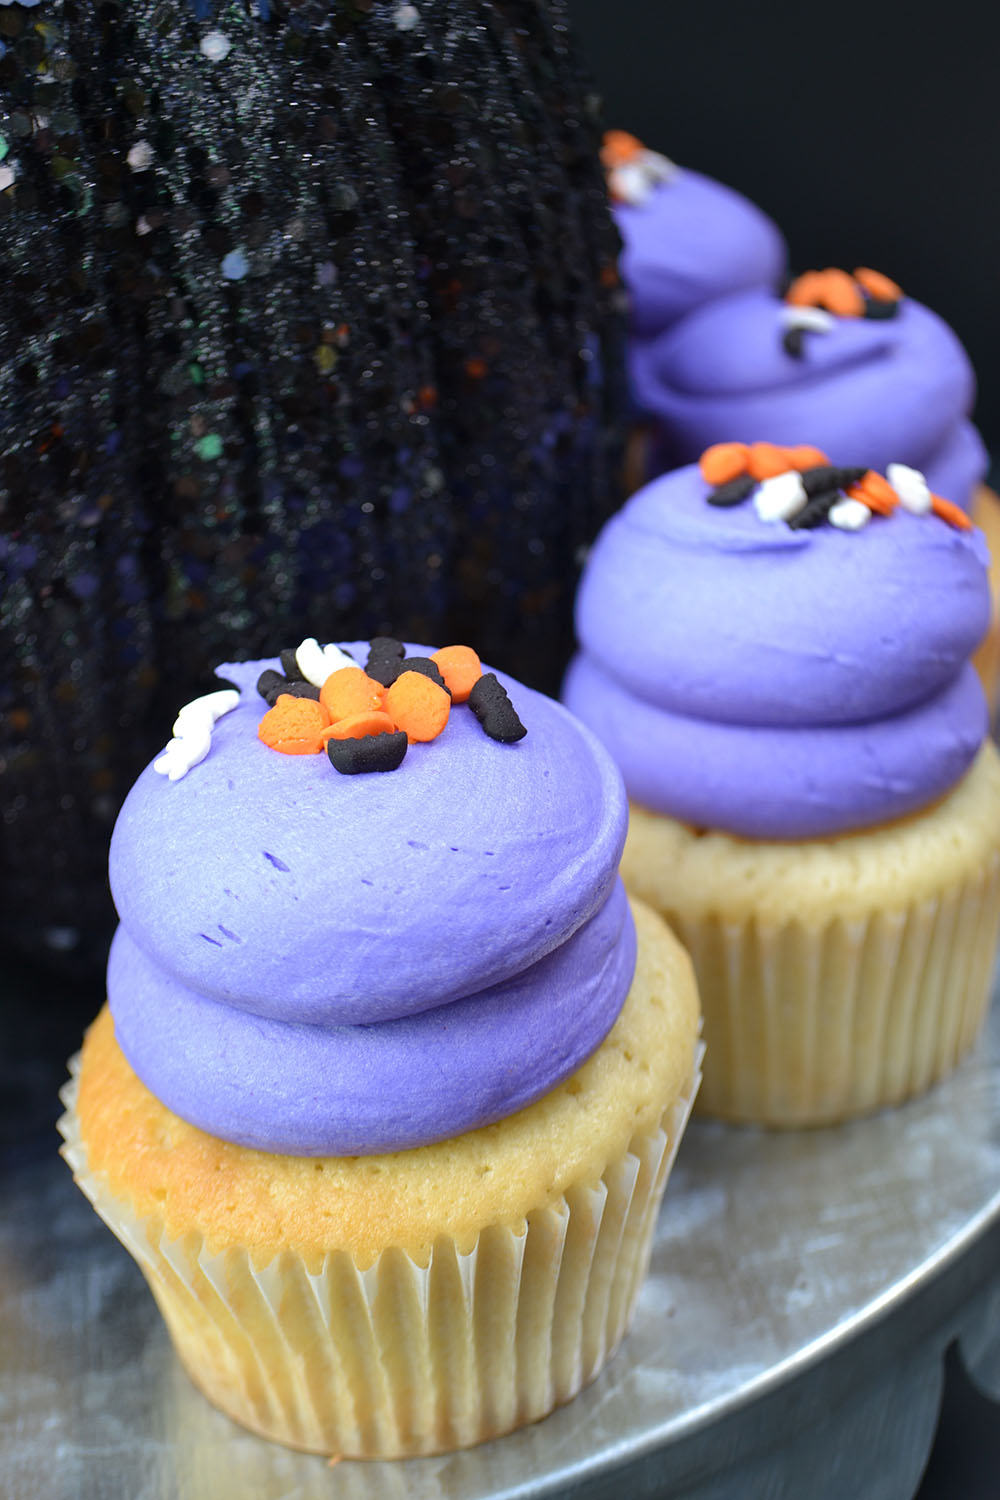 Large Vanilla Cupcake with Halloween Sprinkles $3.50